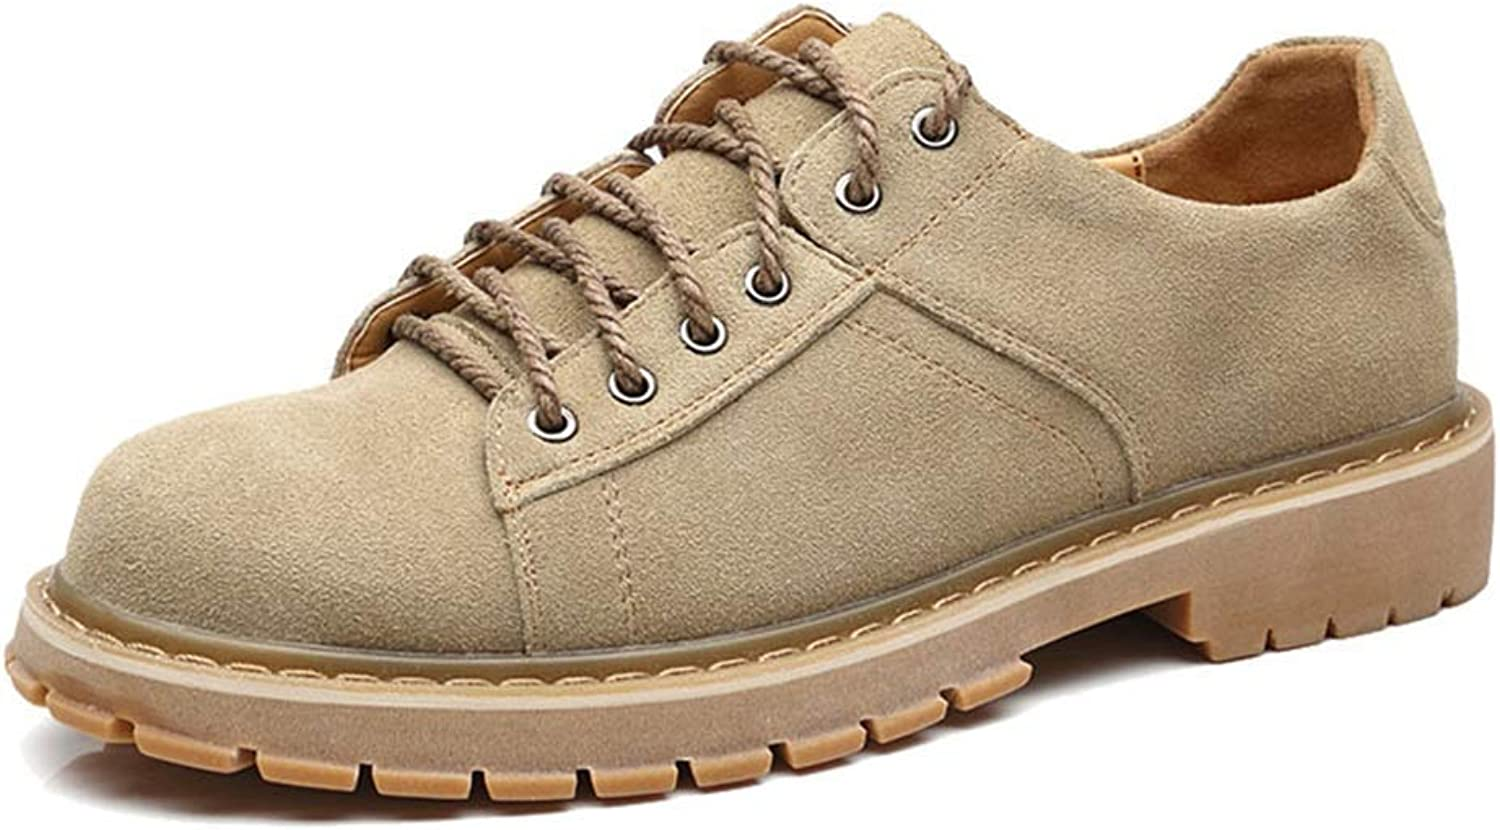 Fuxitoggo Men's Ankle Boots, Casual Classic British Style Comfortable Wear Work Boots (color  Khaki, Size  39 EU) (color   Khaki, Size   41 EU)